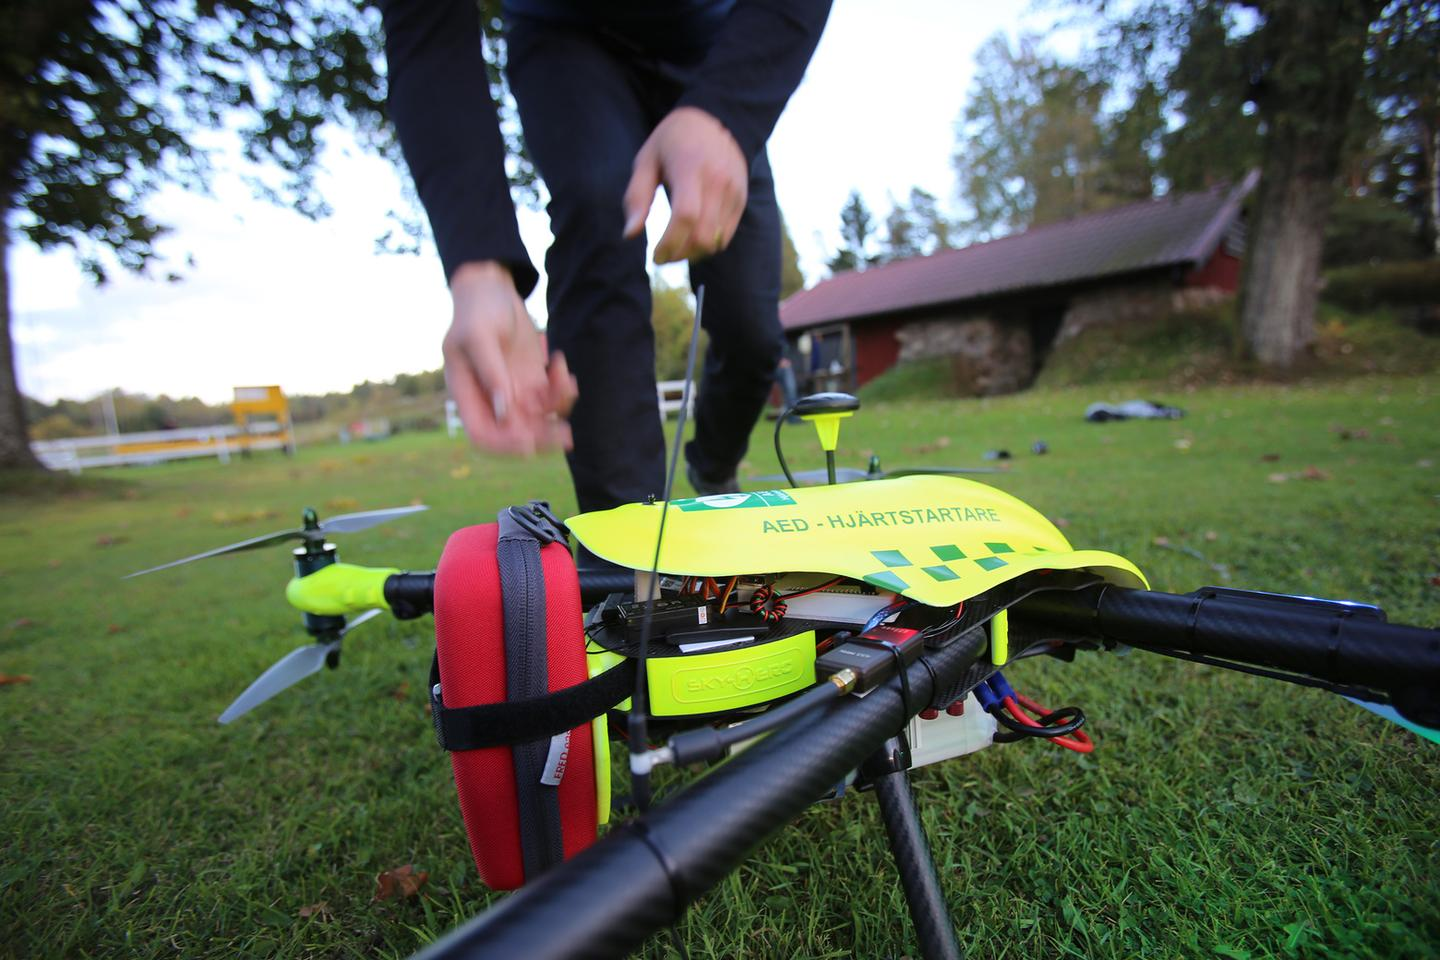 The drone system developed by FlyPulse to transport an emergencydefibrillator